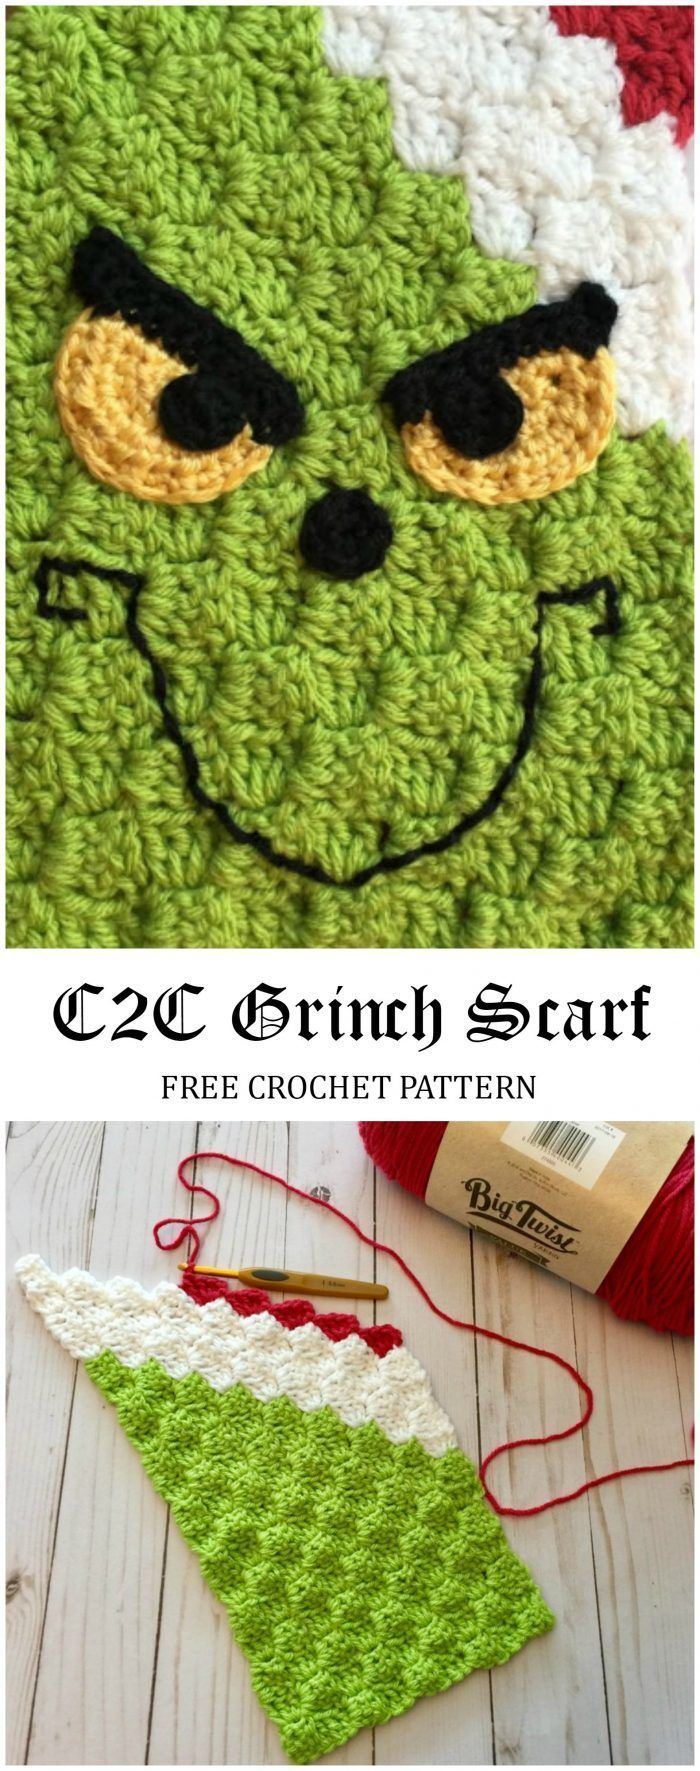 12+ Outstanding Crochet So You Can Comprehend Patterns Ideas #grinchscarfcrochetpatternfree